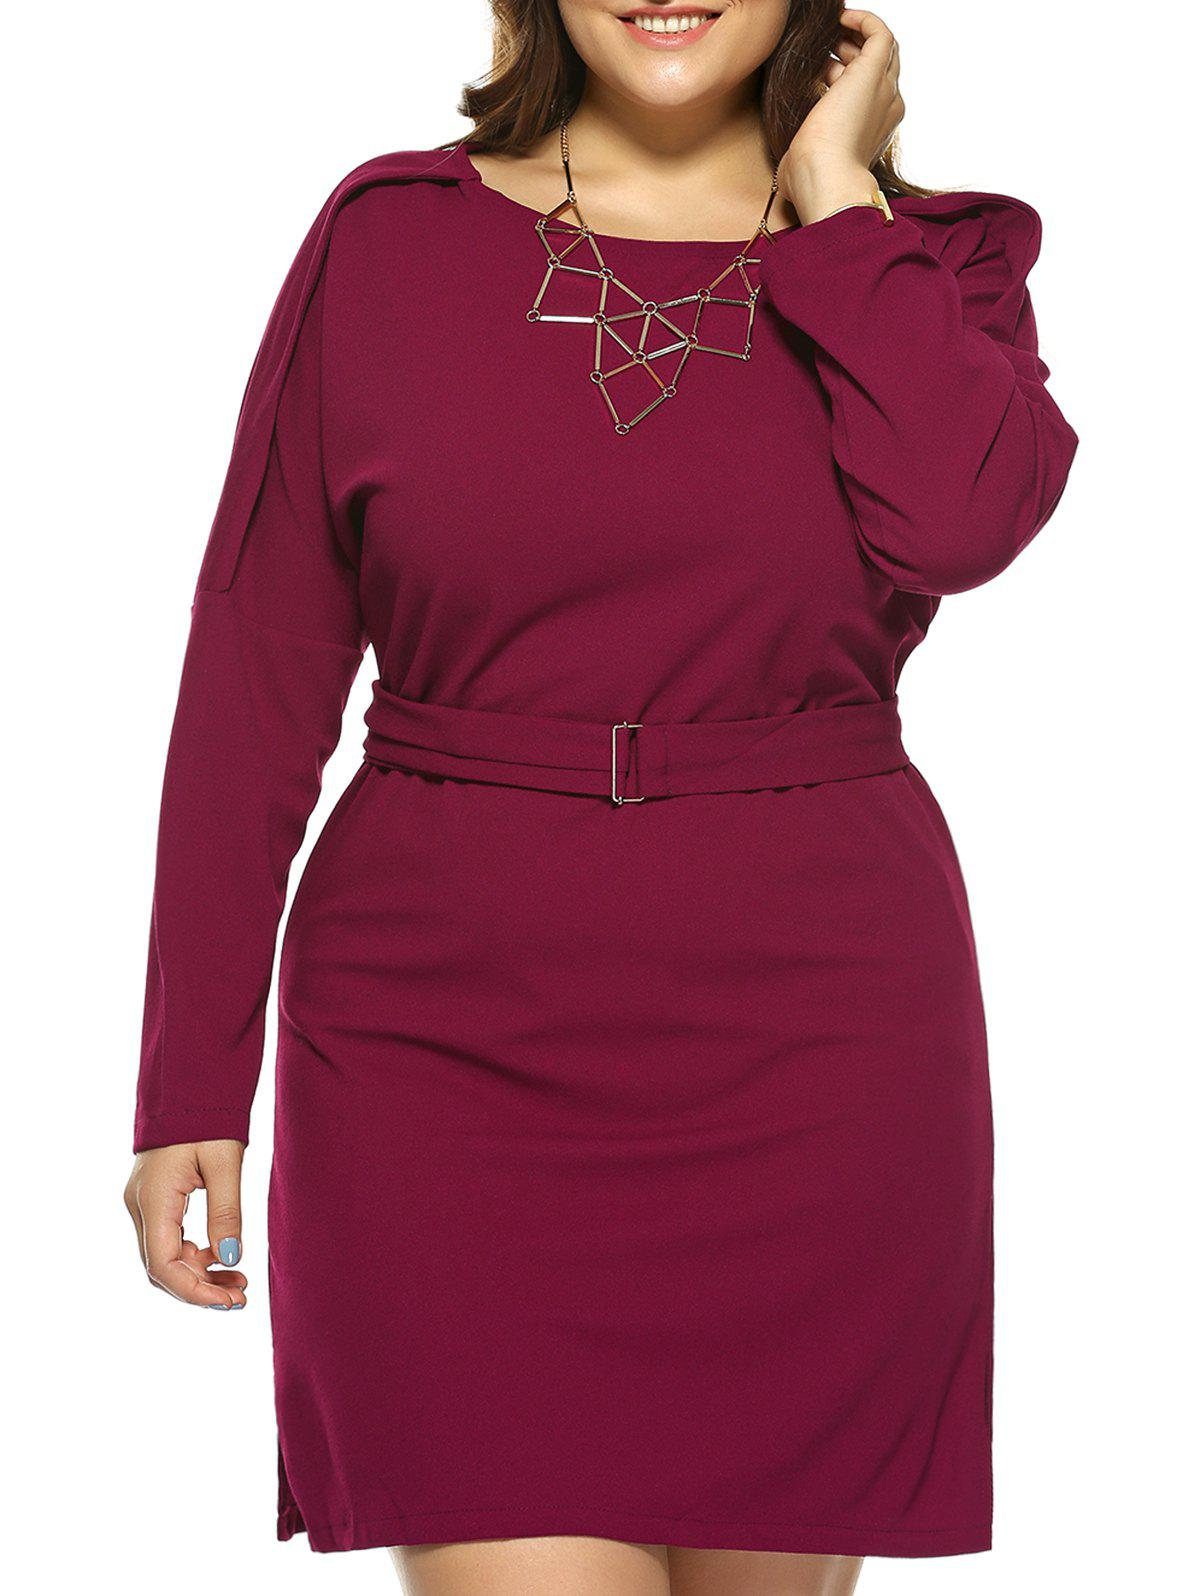 Plus Size Jewel Neck Long Sleeve Dress - WINE RED XL